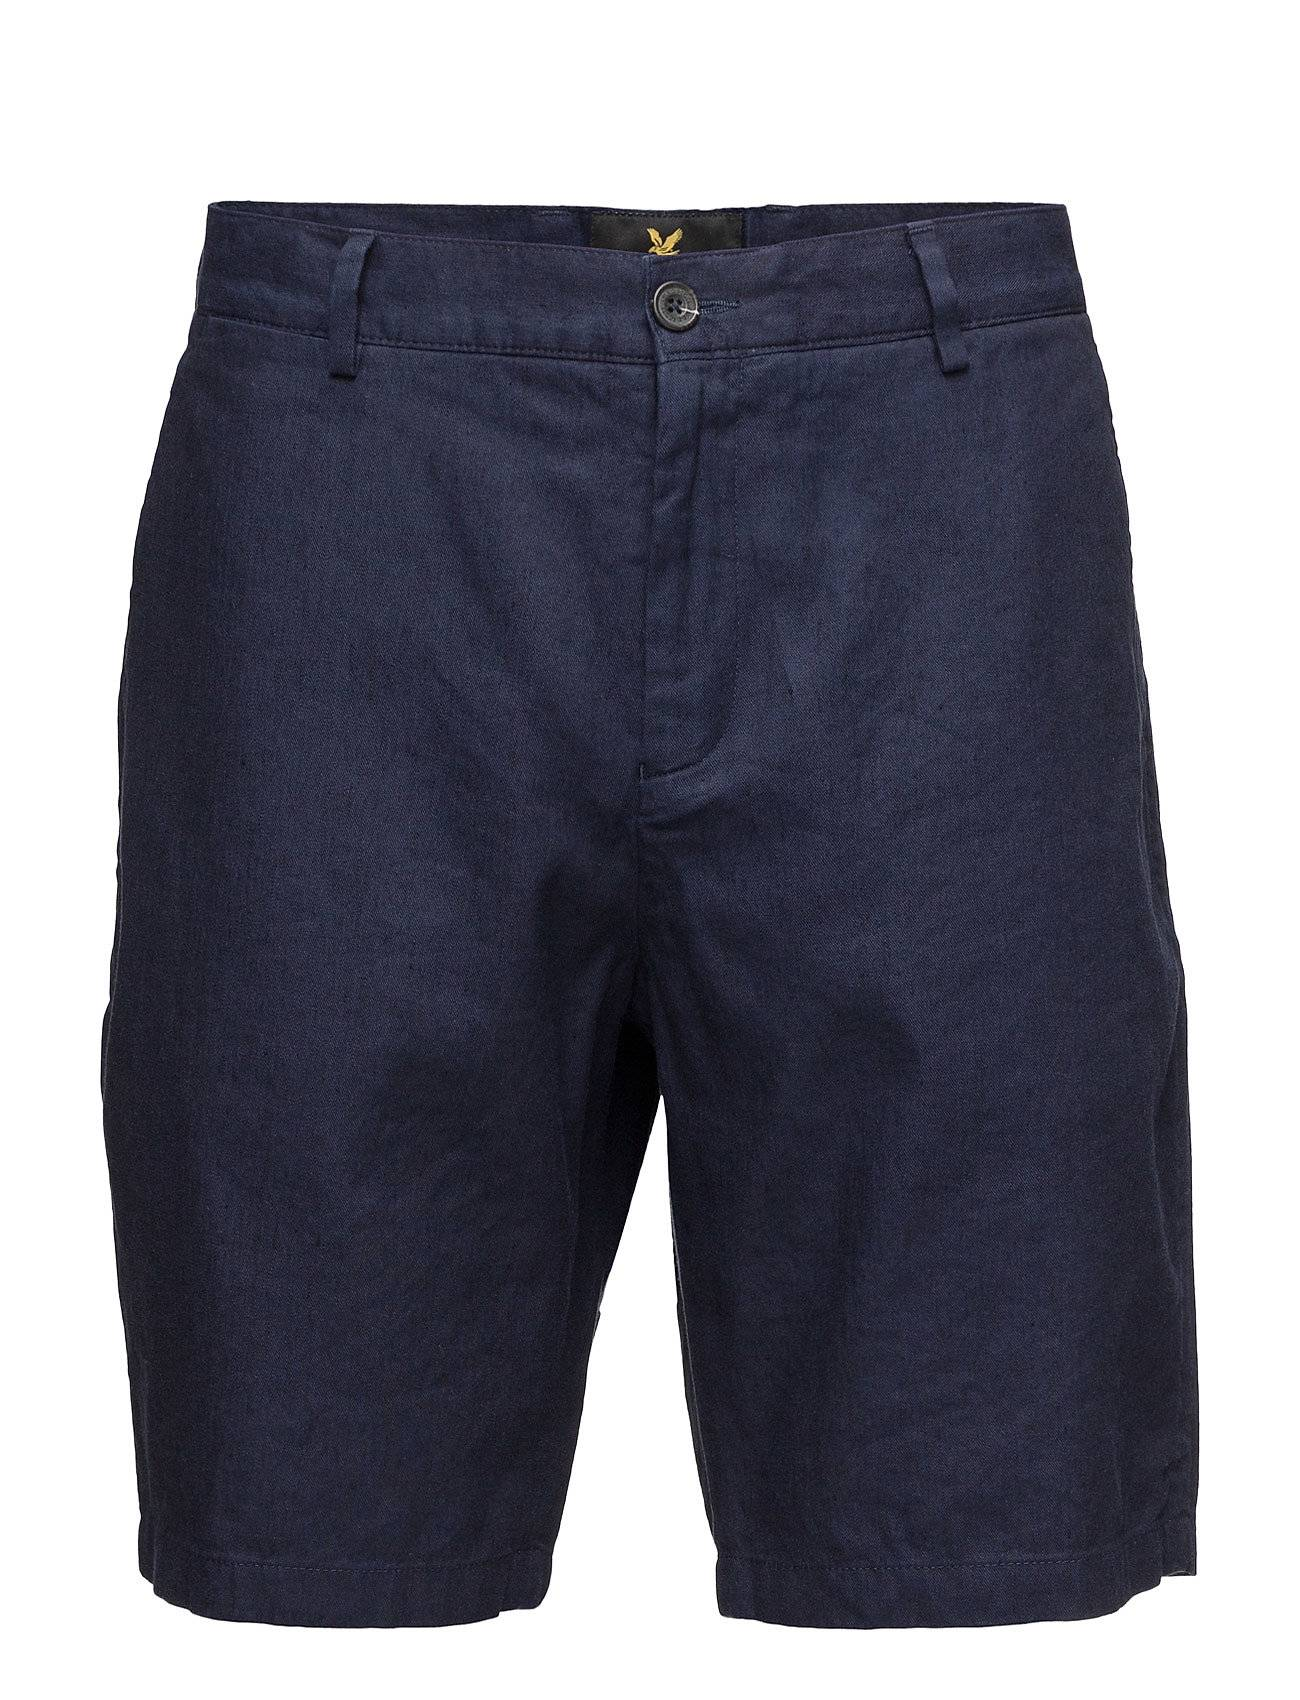 Scott Cotton Linen Short